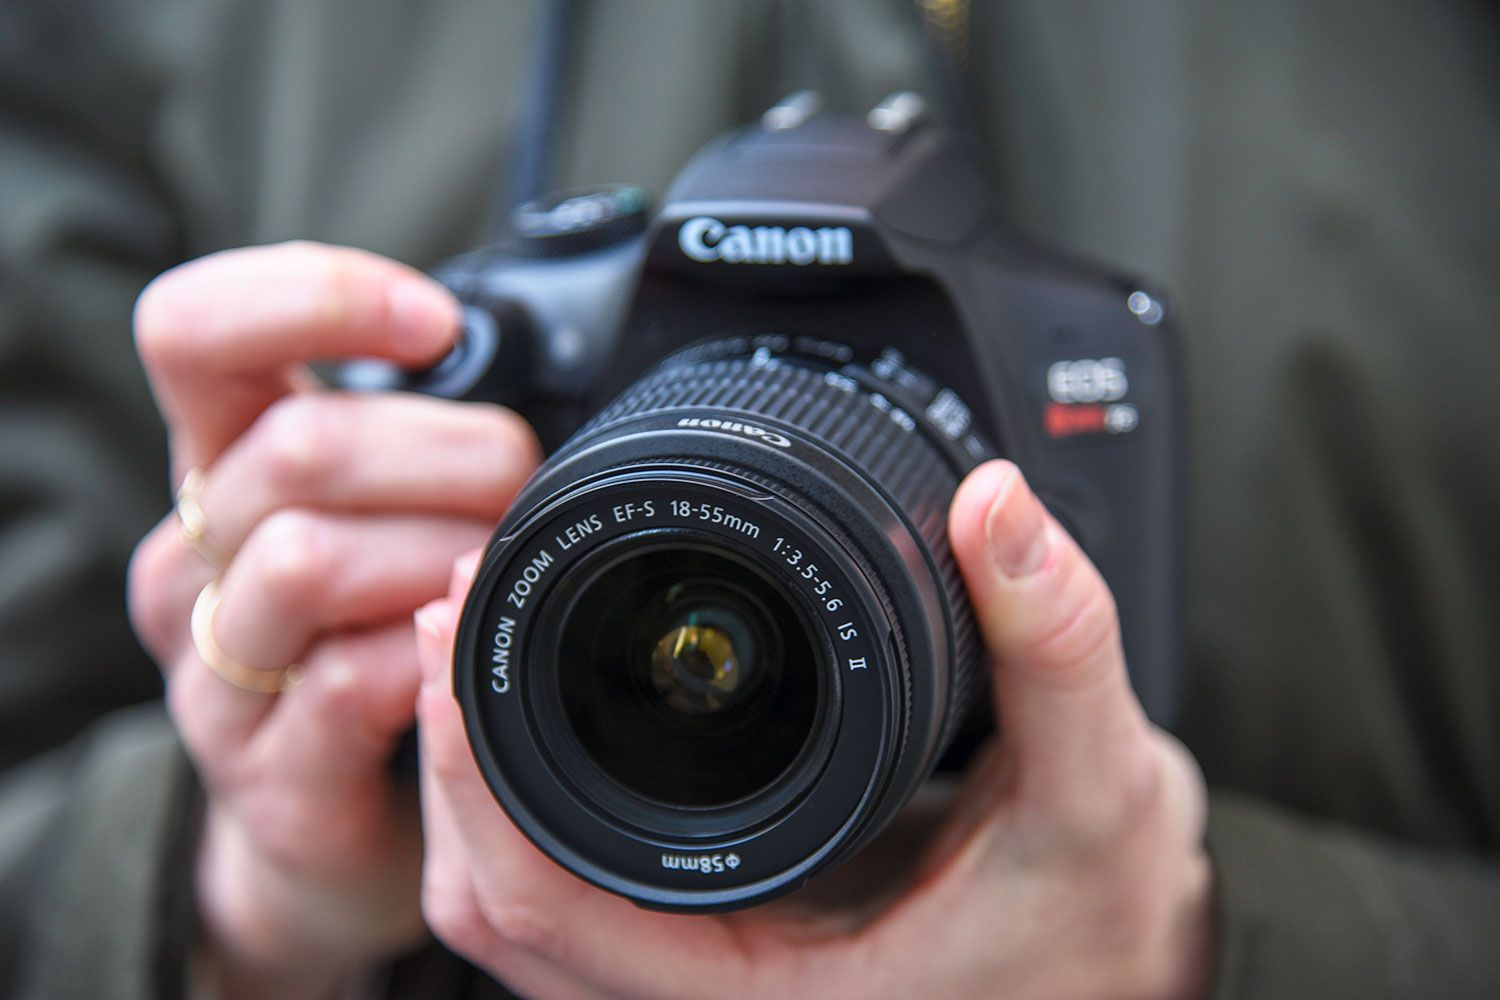 The 10 Best Entry Level DSLR Cameras for Beginners in 2019